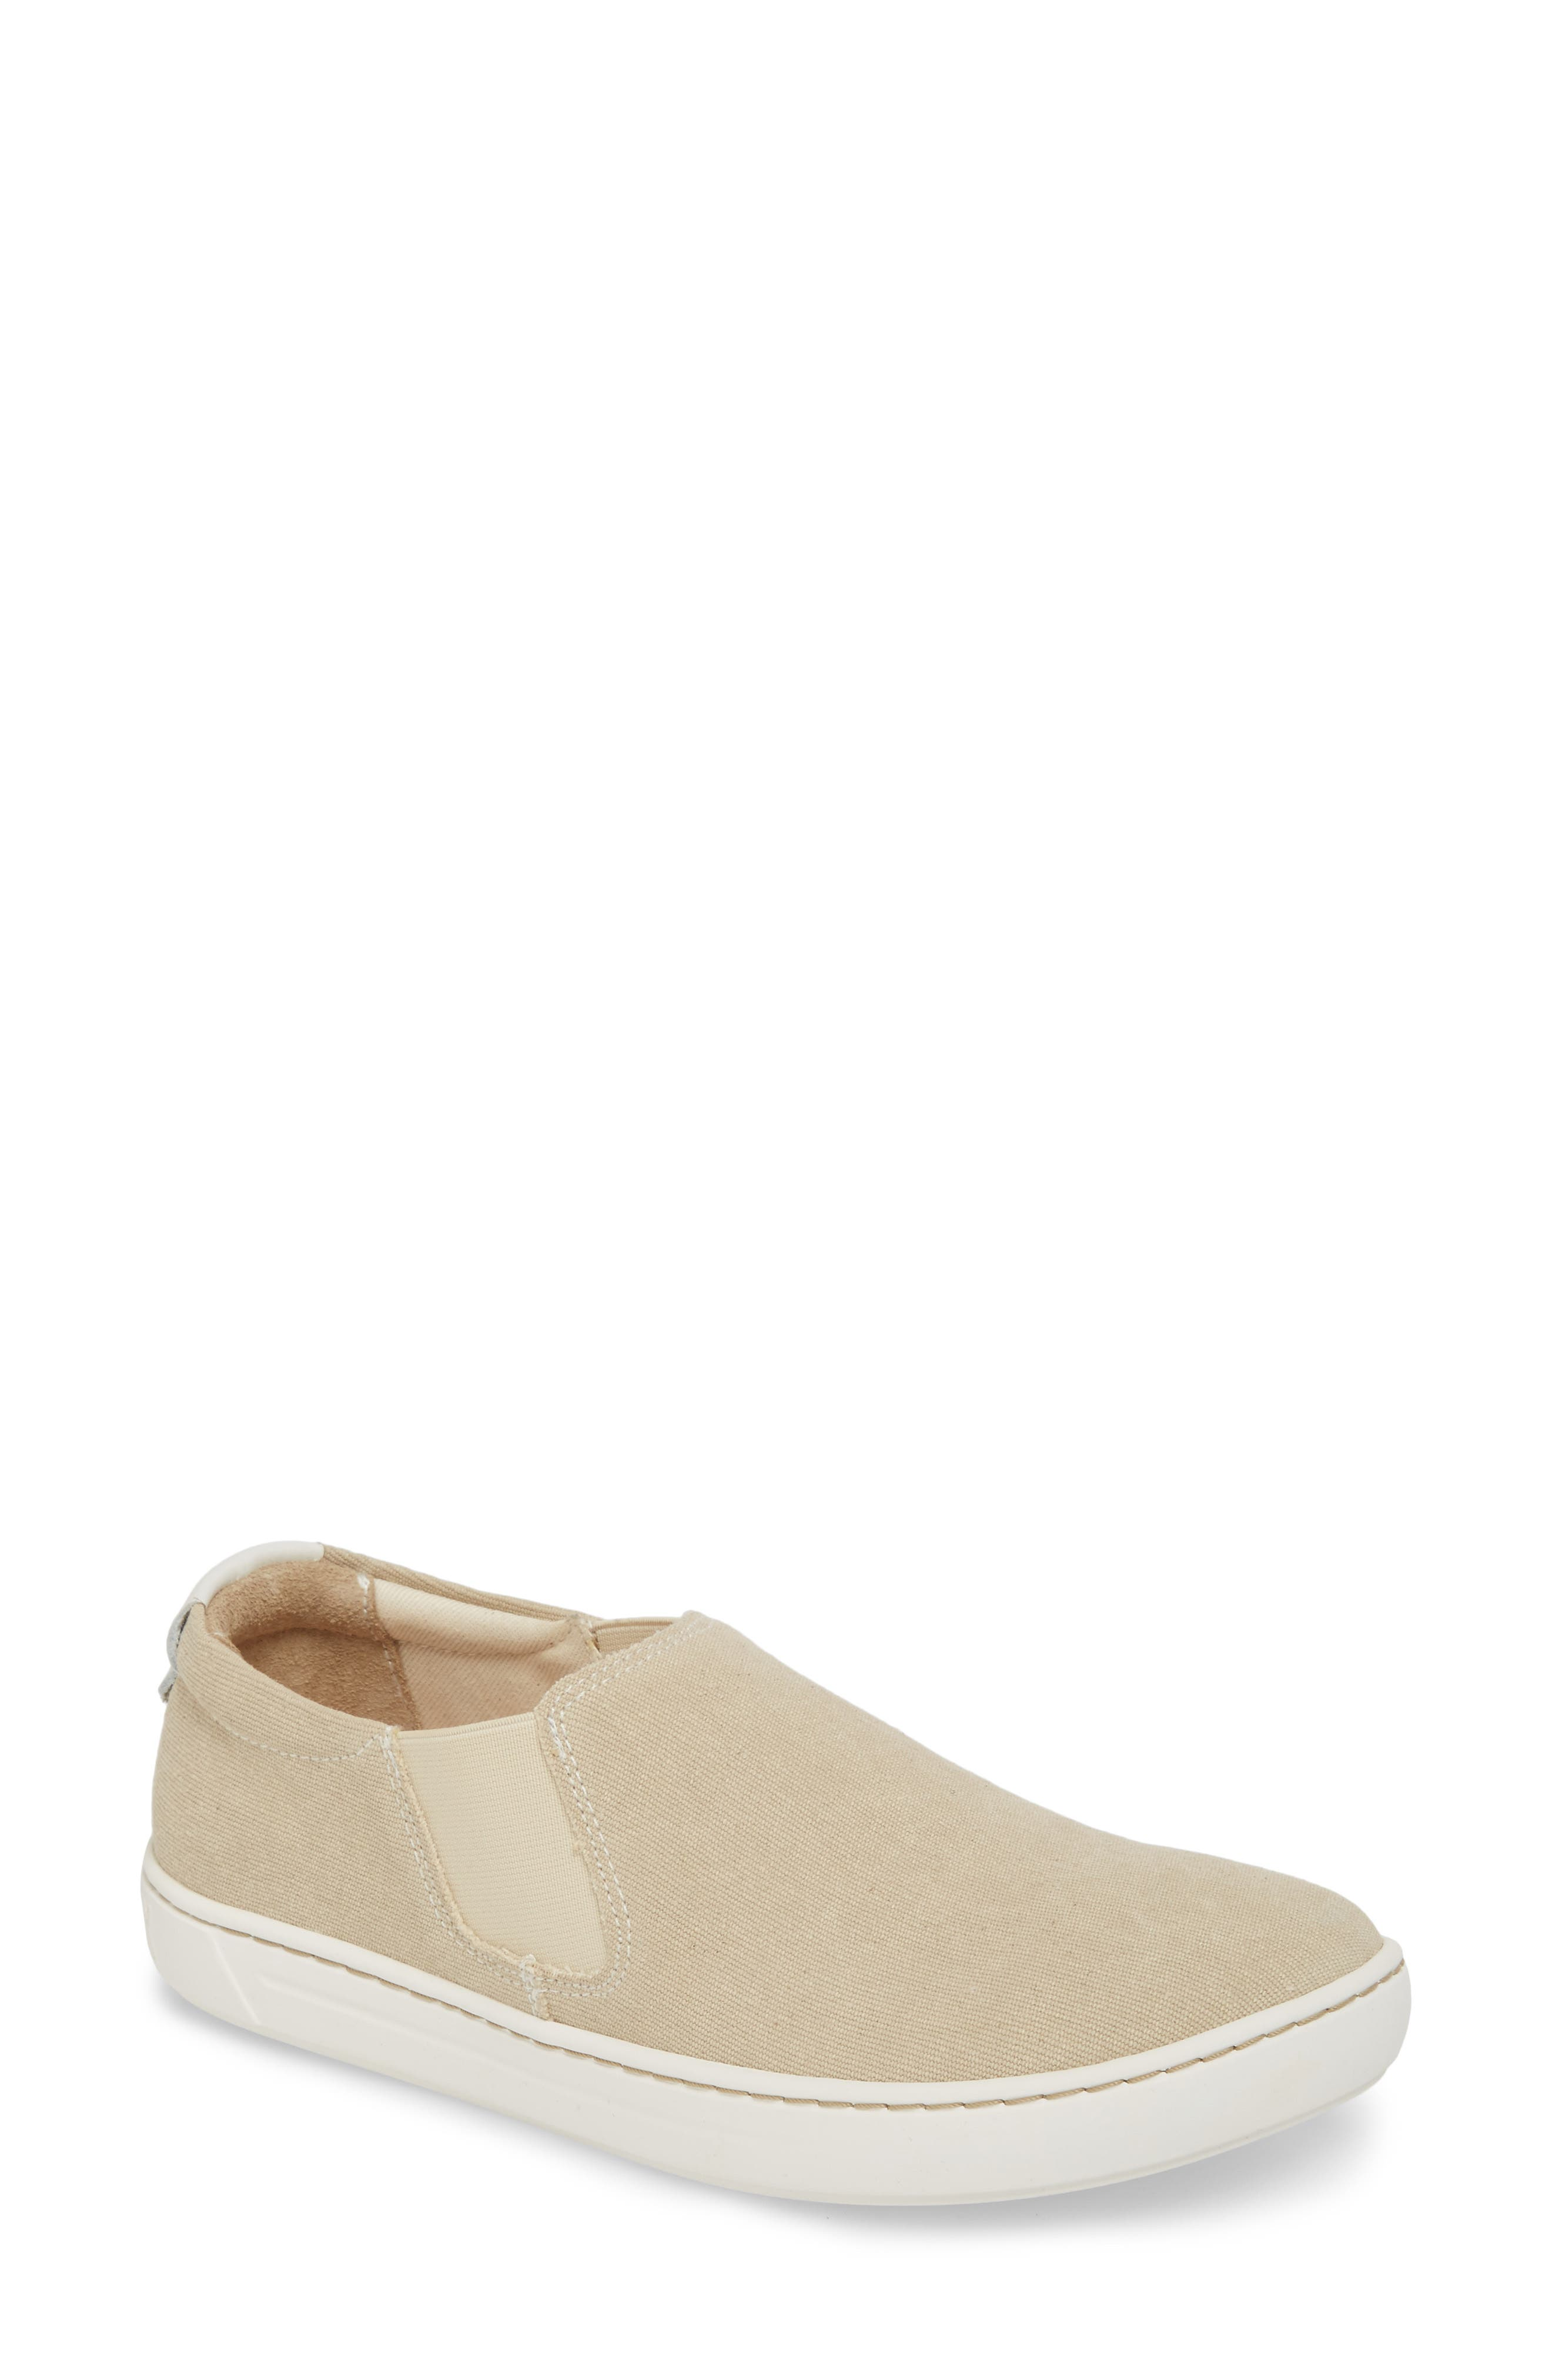 Barrie Slip-On Sneaker,                             Main thumbnail 1, color,                             Sand Canvas